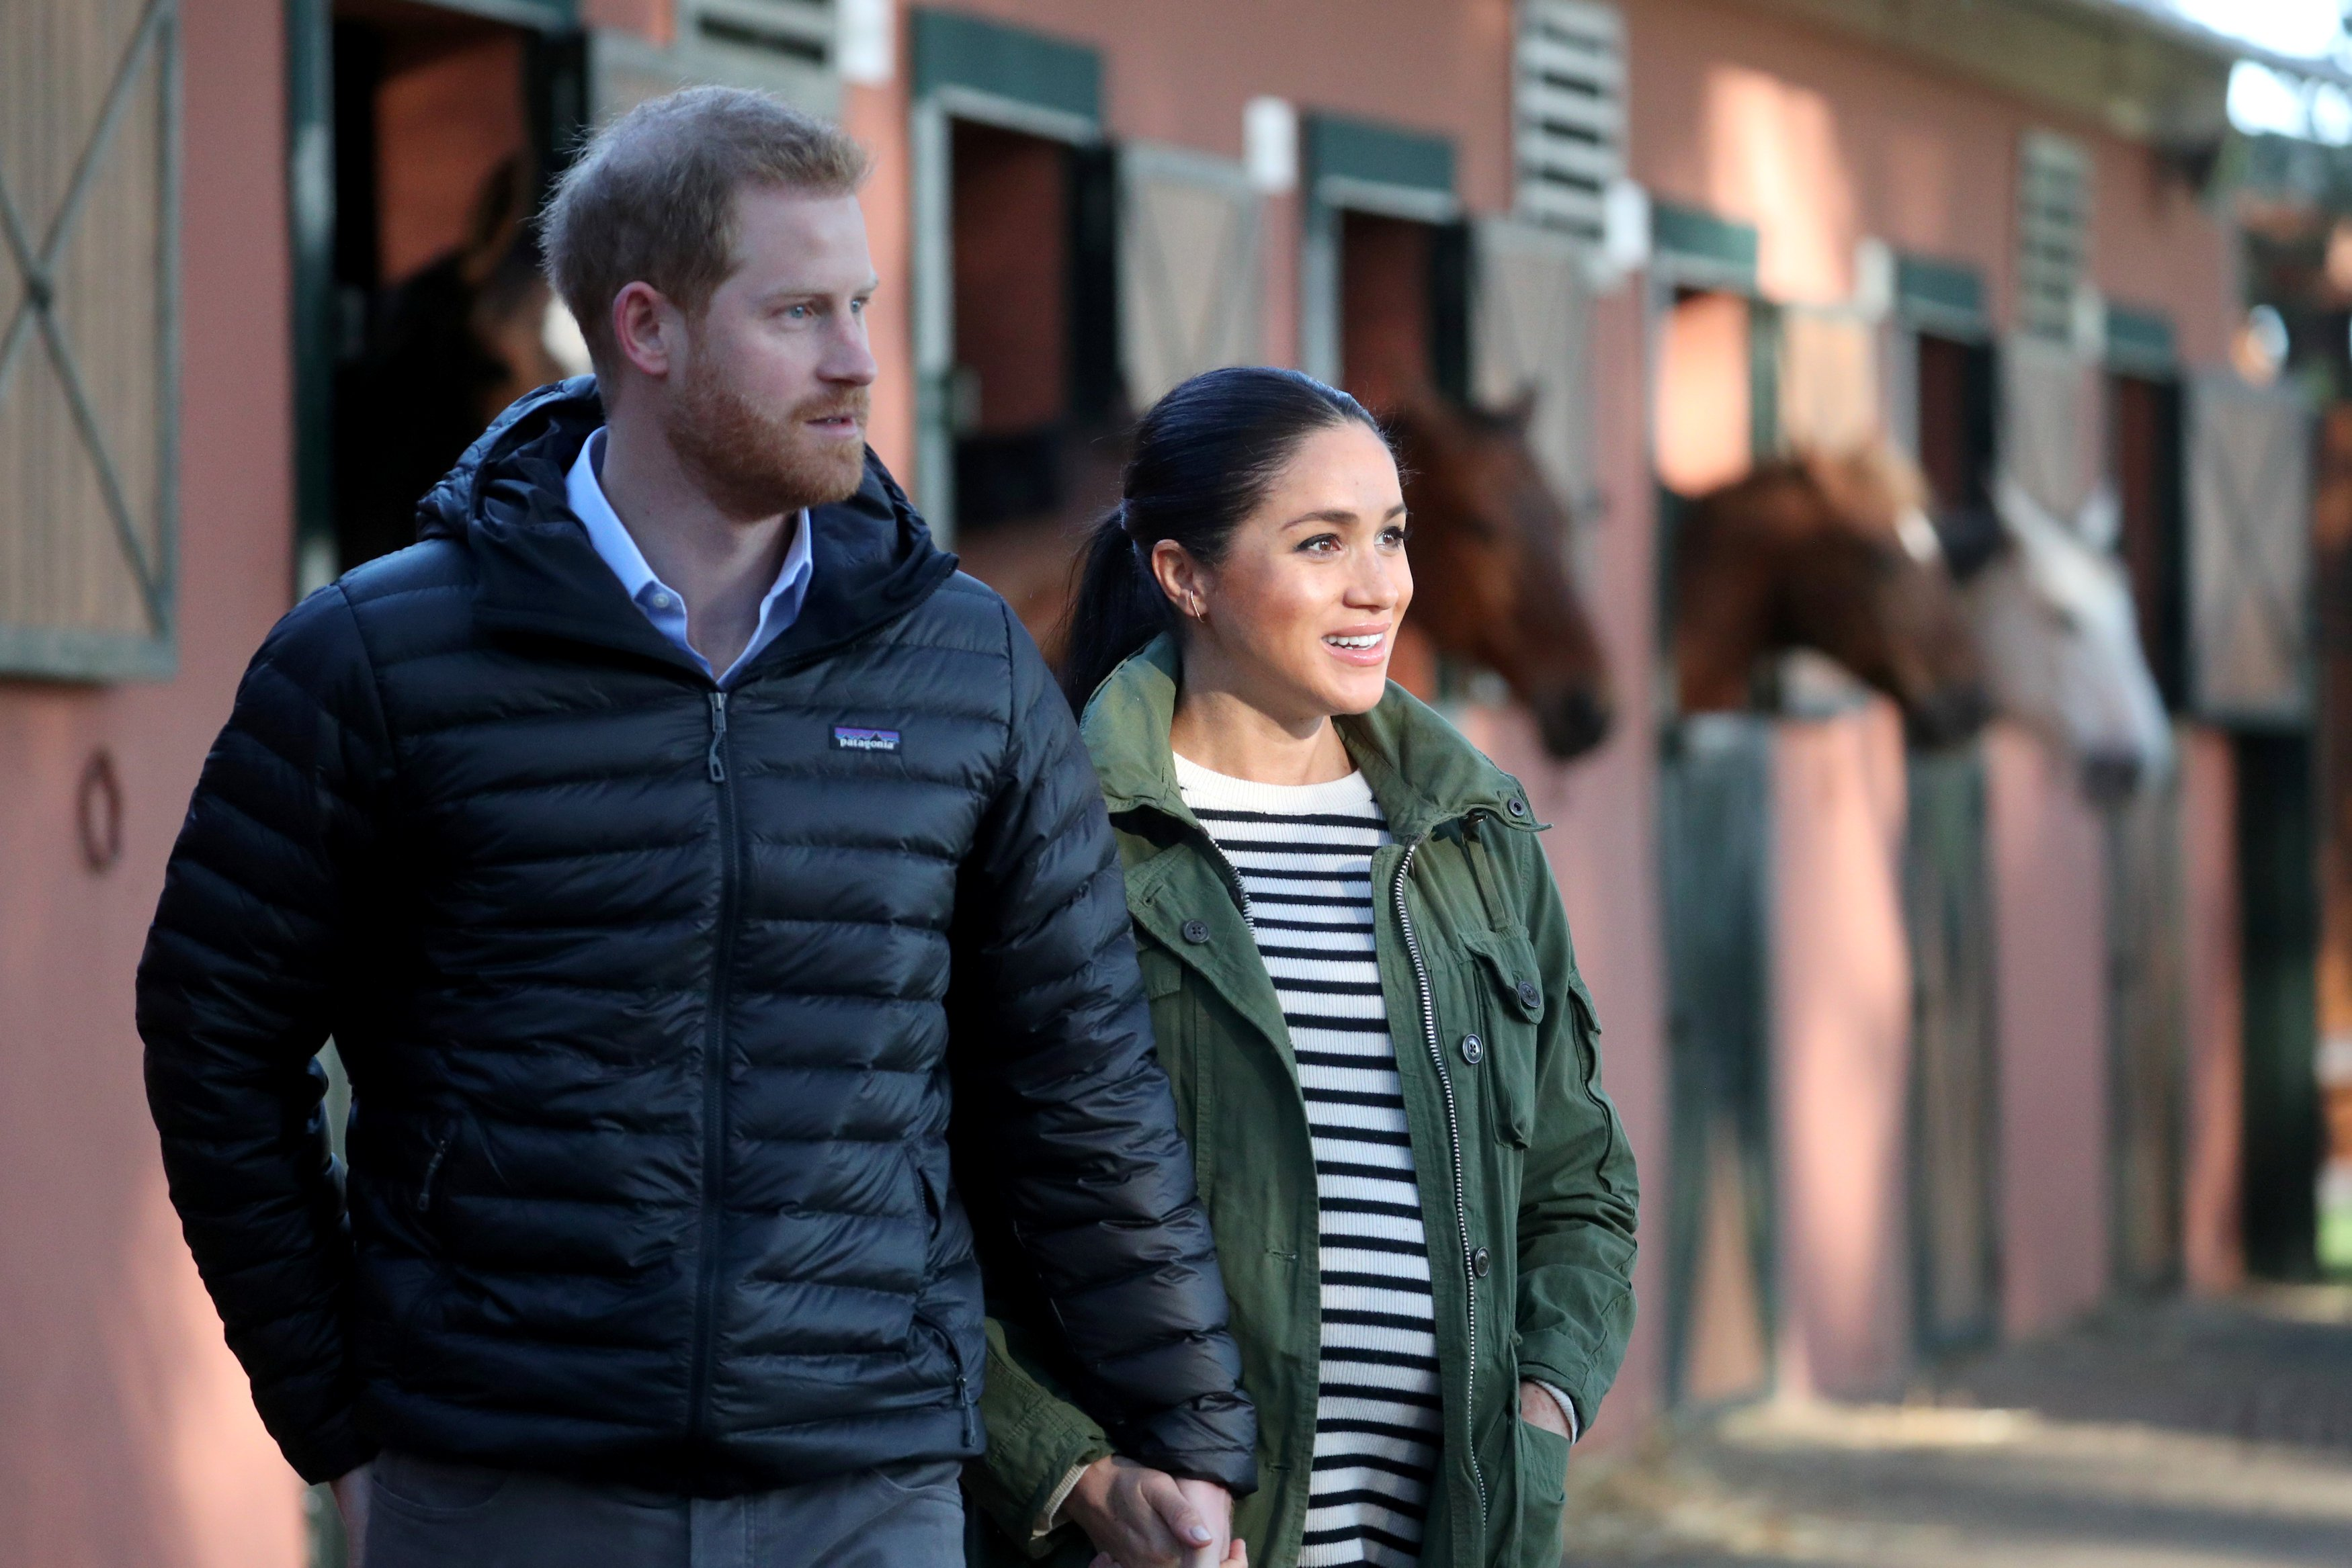 Prince Harry and Meghan Markle pictured at the Moroccan Royal Federation of Equitation Sports, 2019, Rabat Morocco.